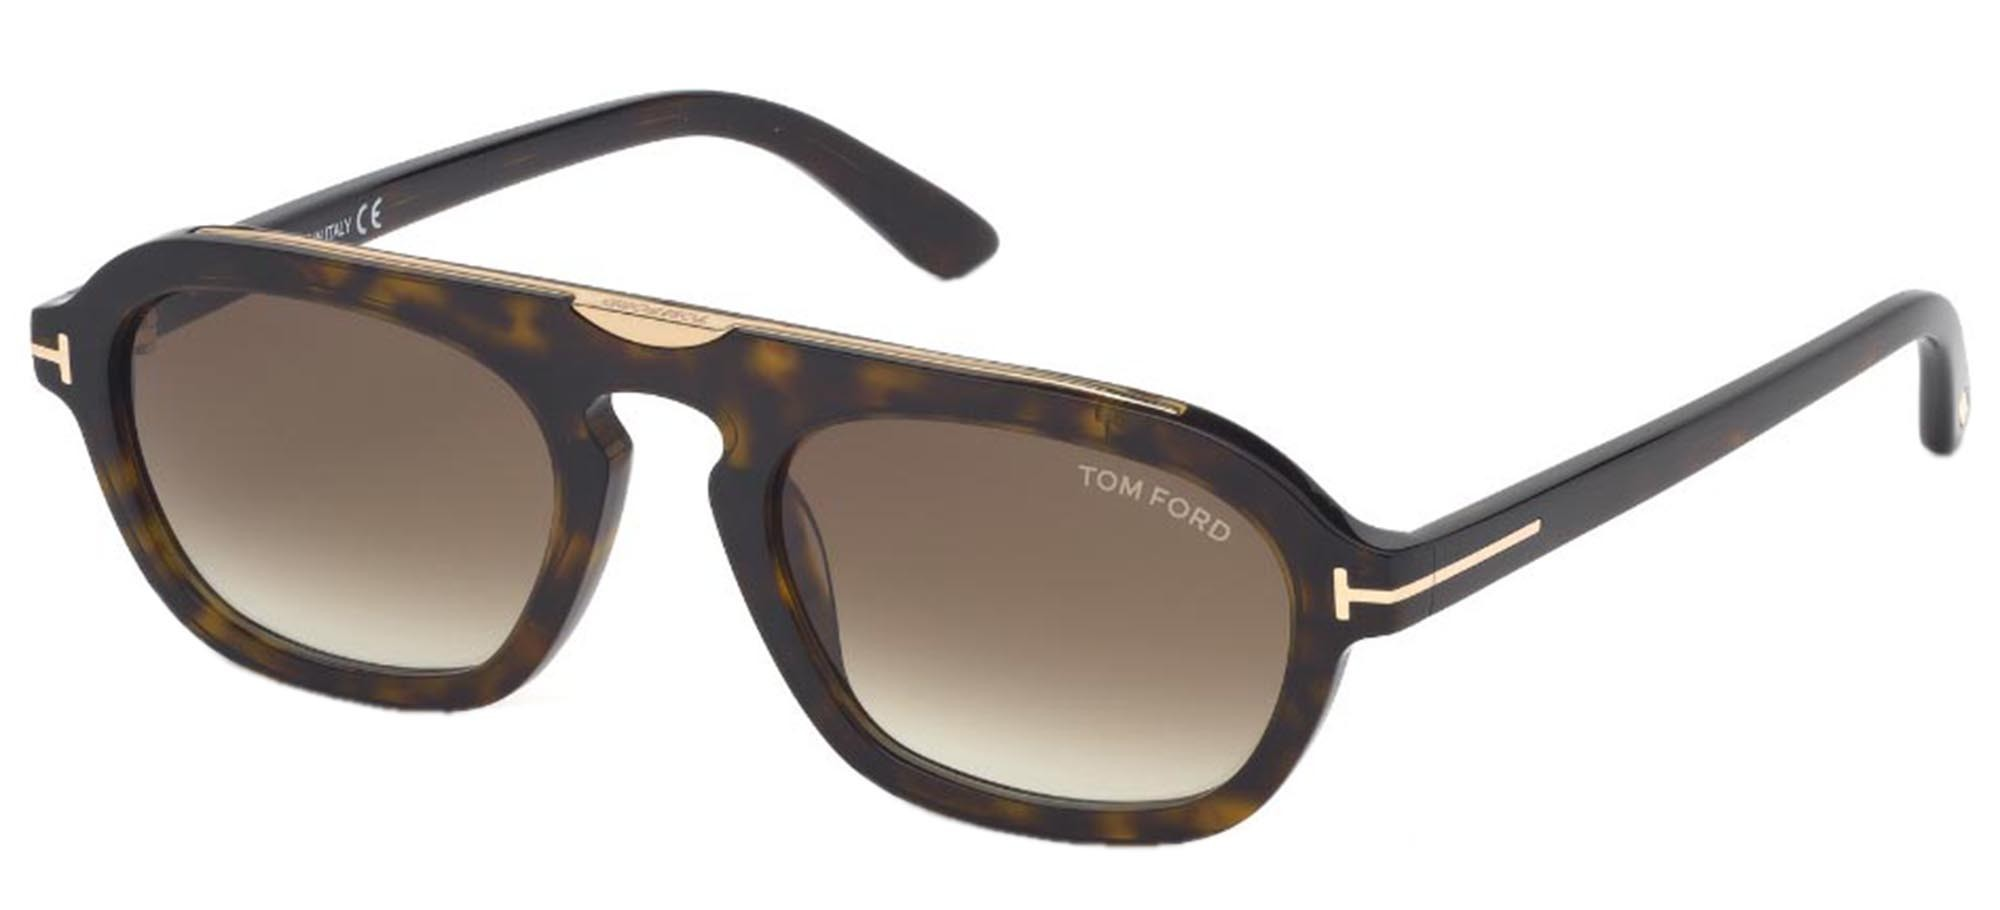 Tom Ford sunglasses SEBASTIAN-02 FT 0736